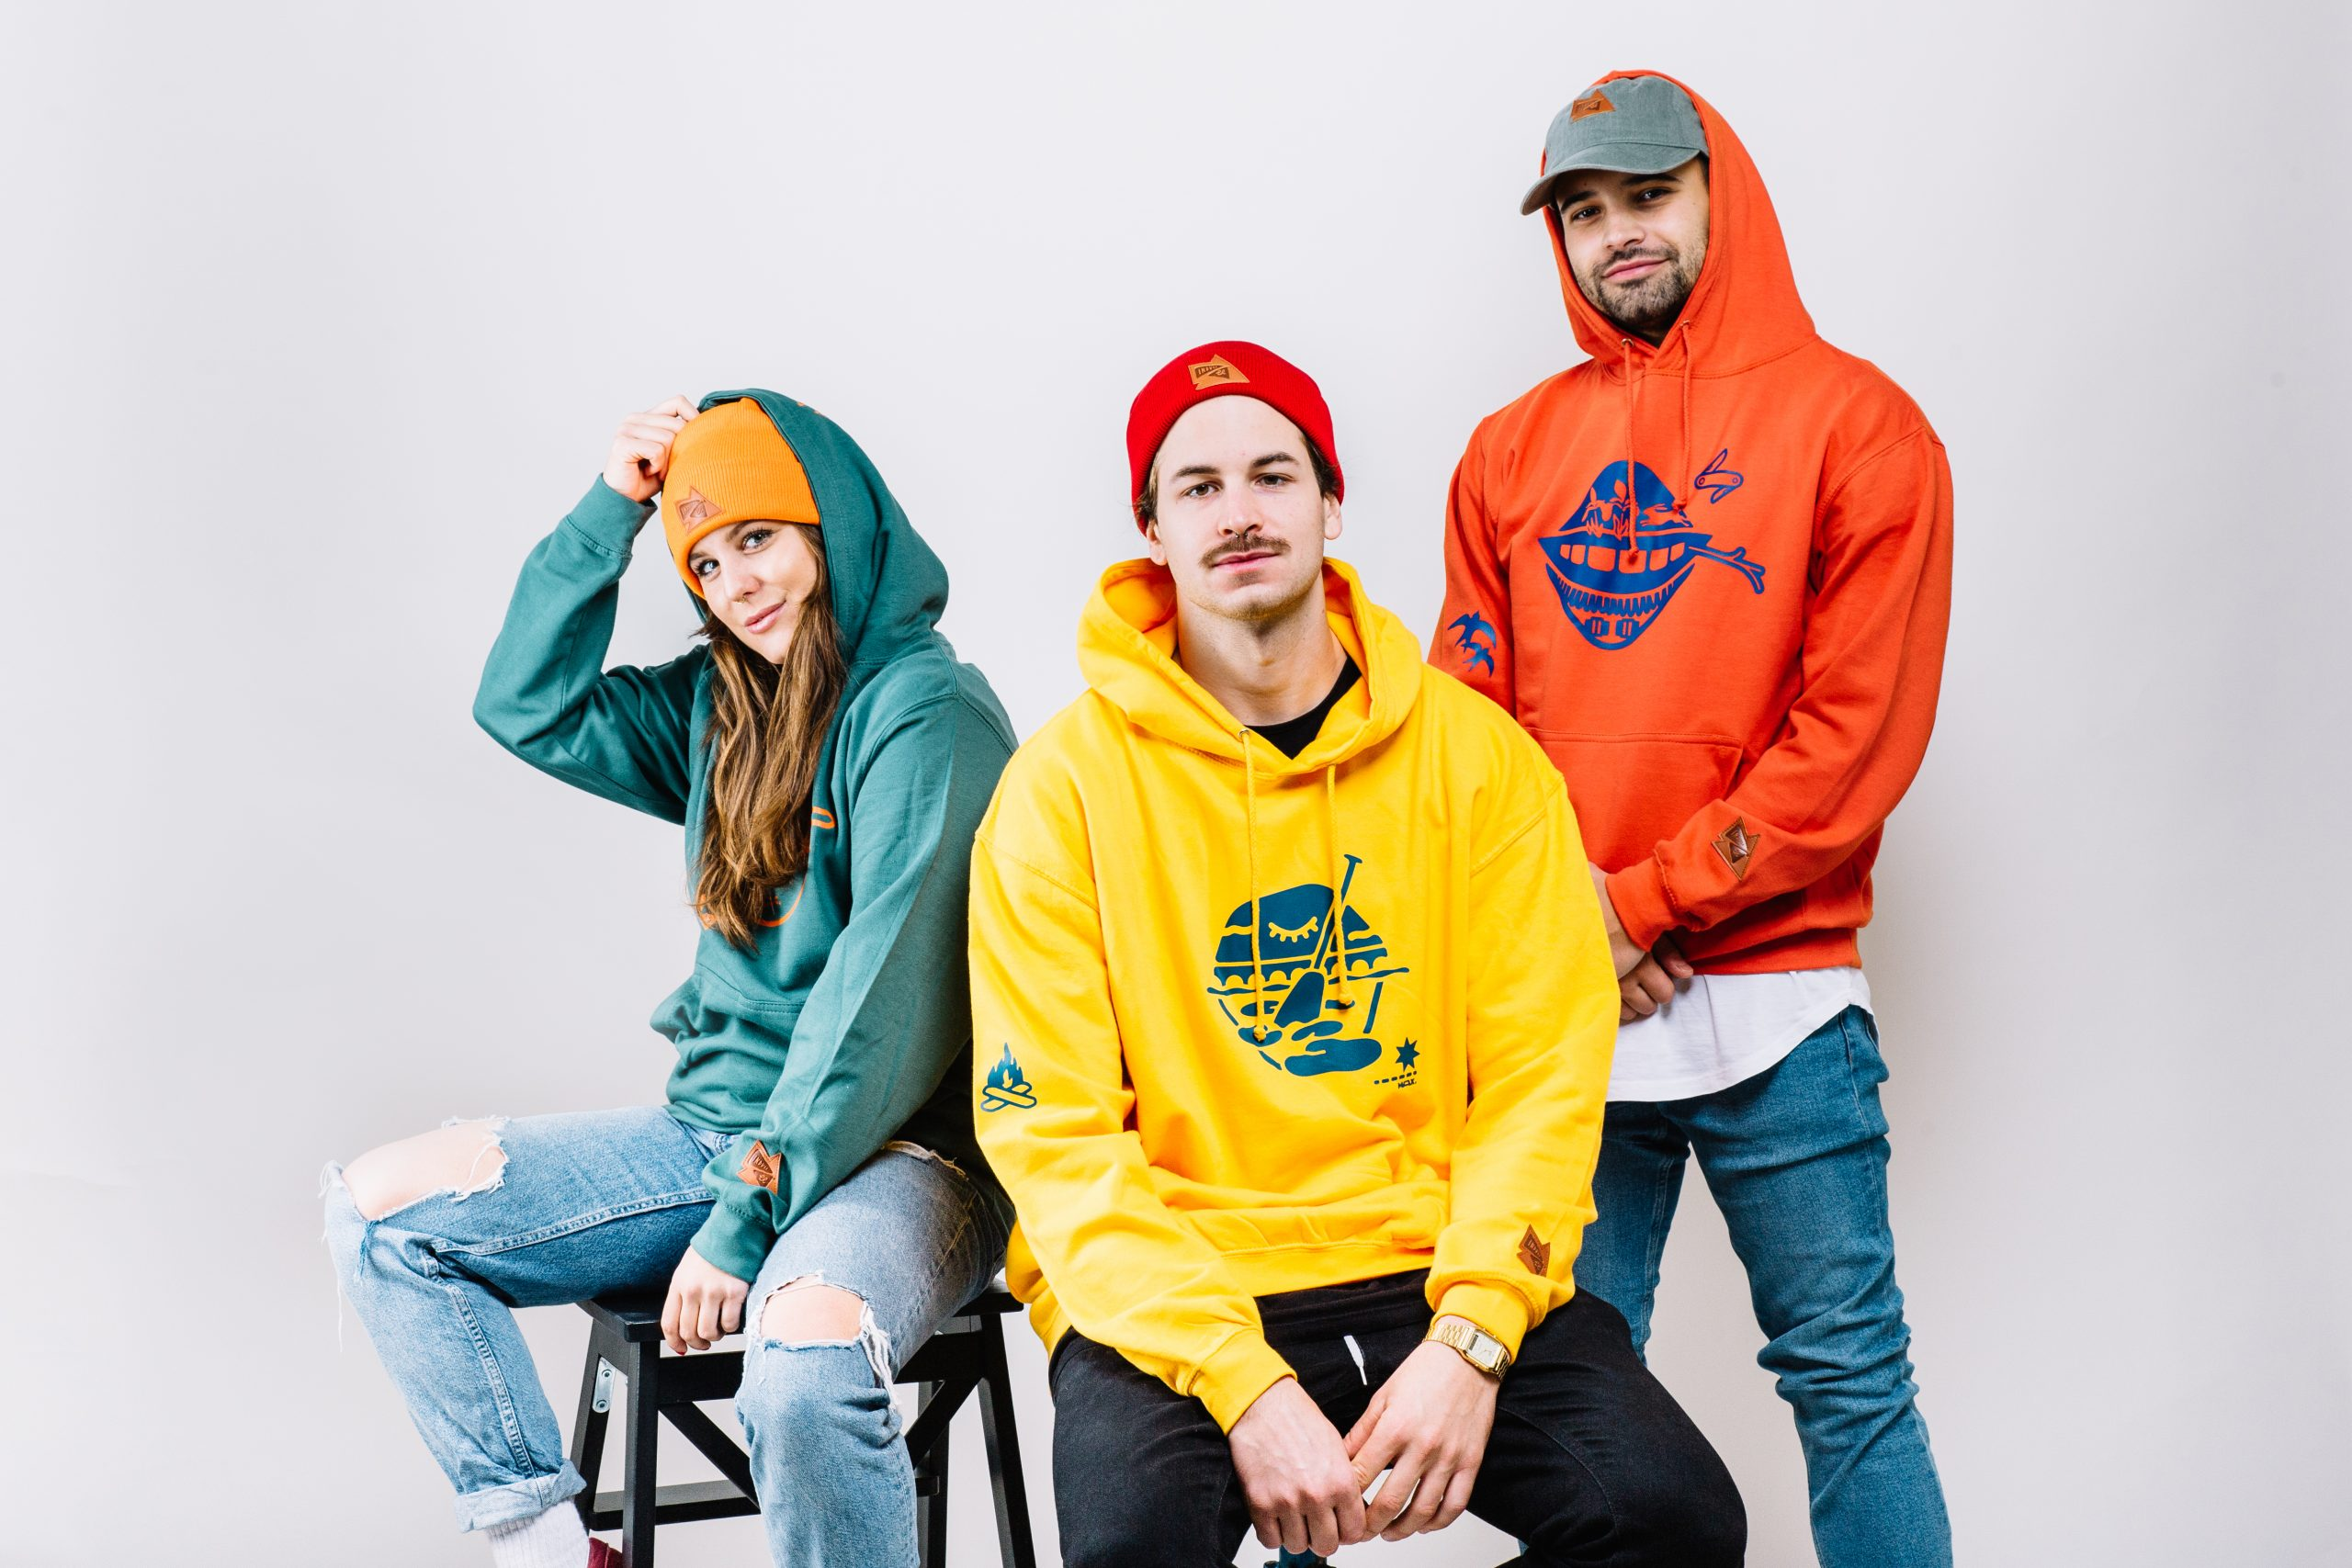 Your must-haves for outdoor adventures | Our merch collection is out now